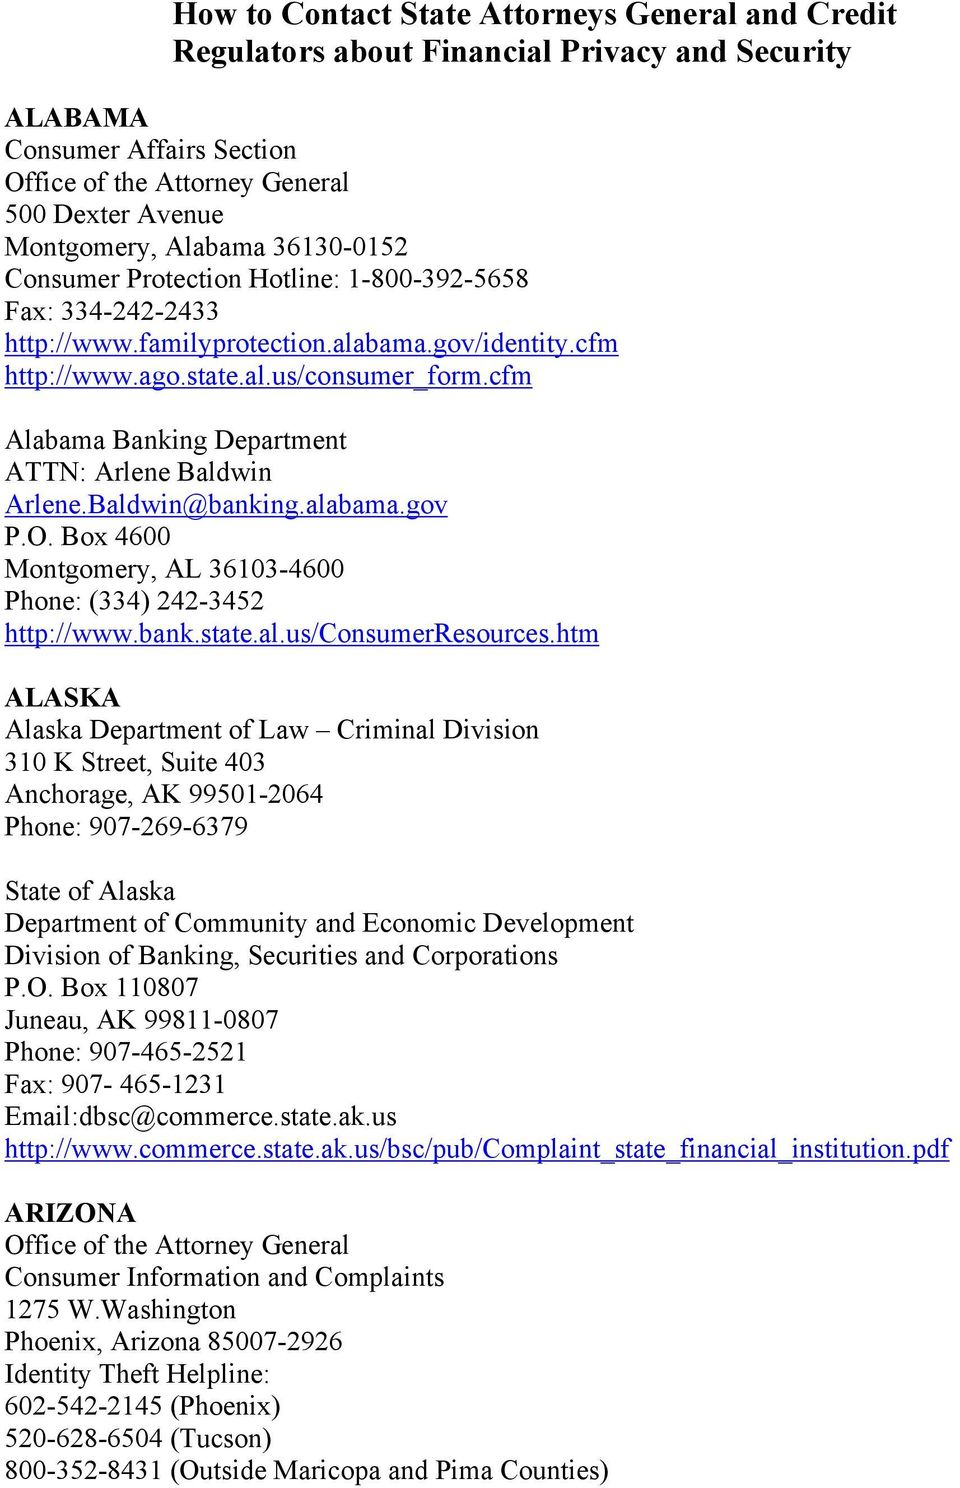 Baldwin@banking.alabama.gov P.O. Box 4600 Montgomery, AL 36103-4600 Phone: (334) 242-3452 http://www.bank.state.al.us/consumerresources.